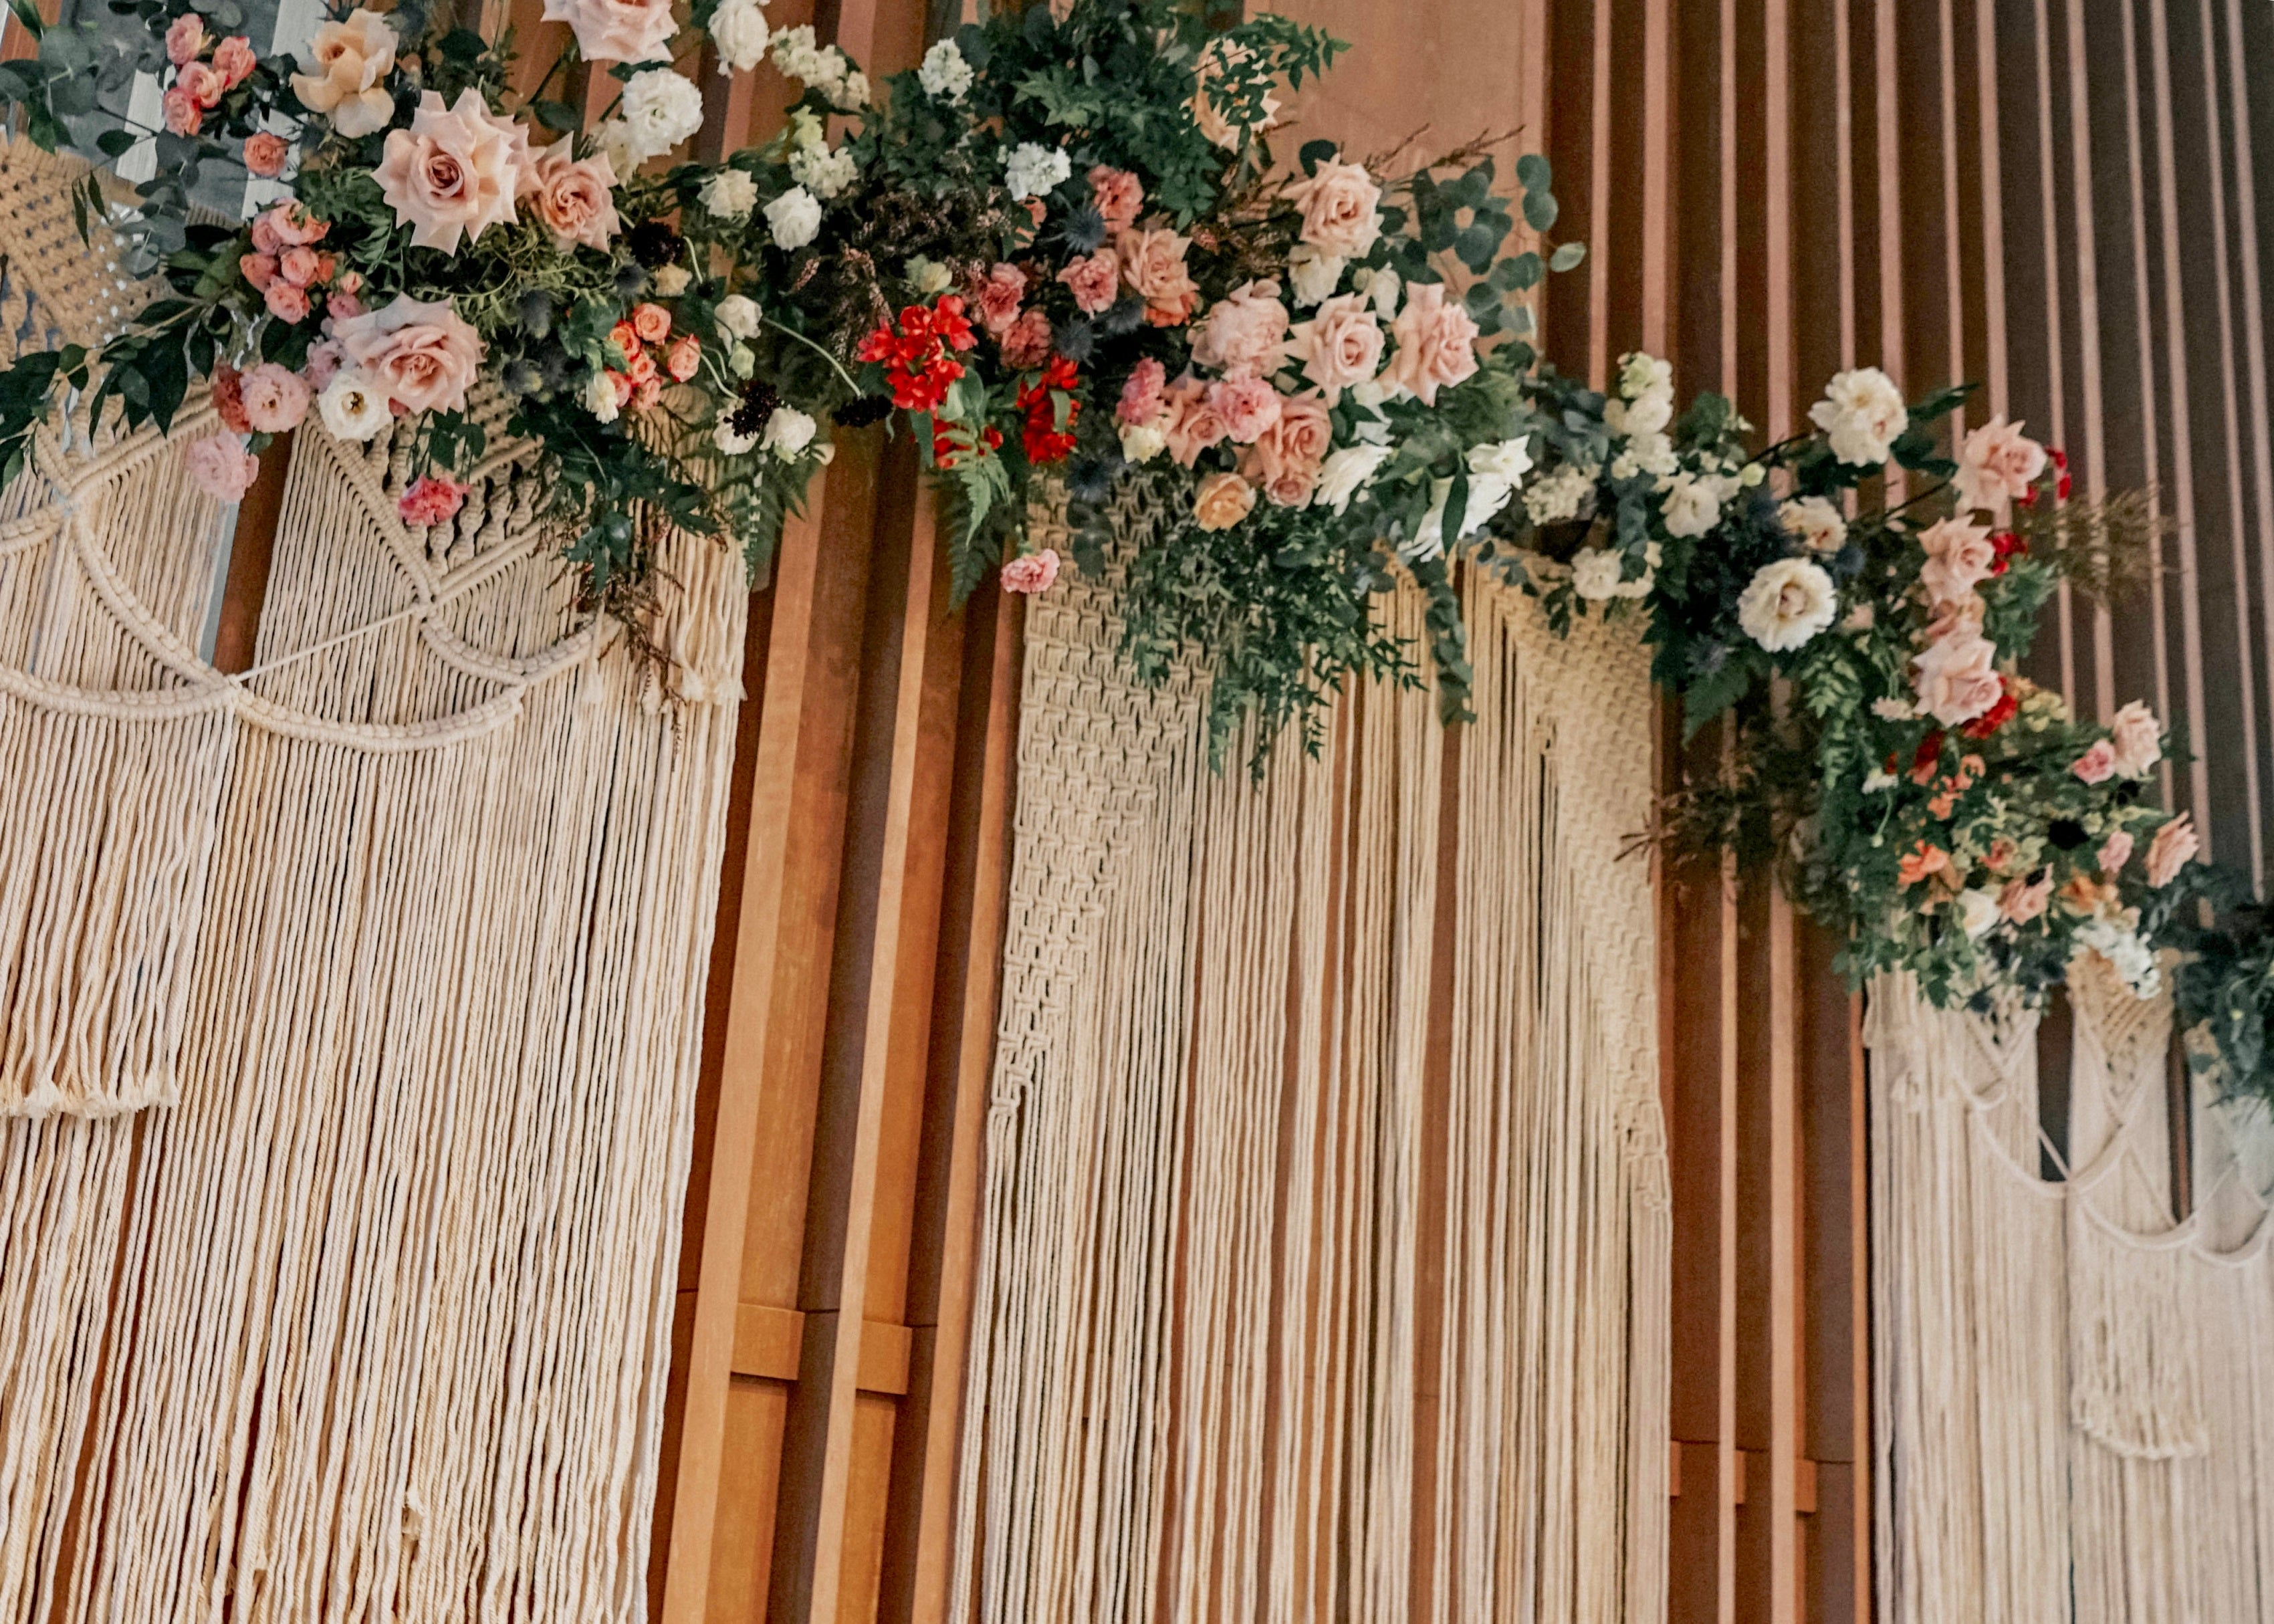 Close up of yarn boho macramé backdrop accentuated with eucalyptus, peonies, roses, Scabiosa, Alstromeria, Eustoma, Didiscus, Ranunculus, Queen Anne Lace and Astibile